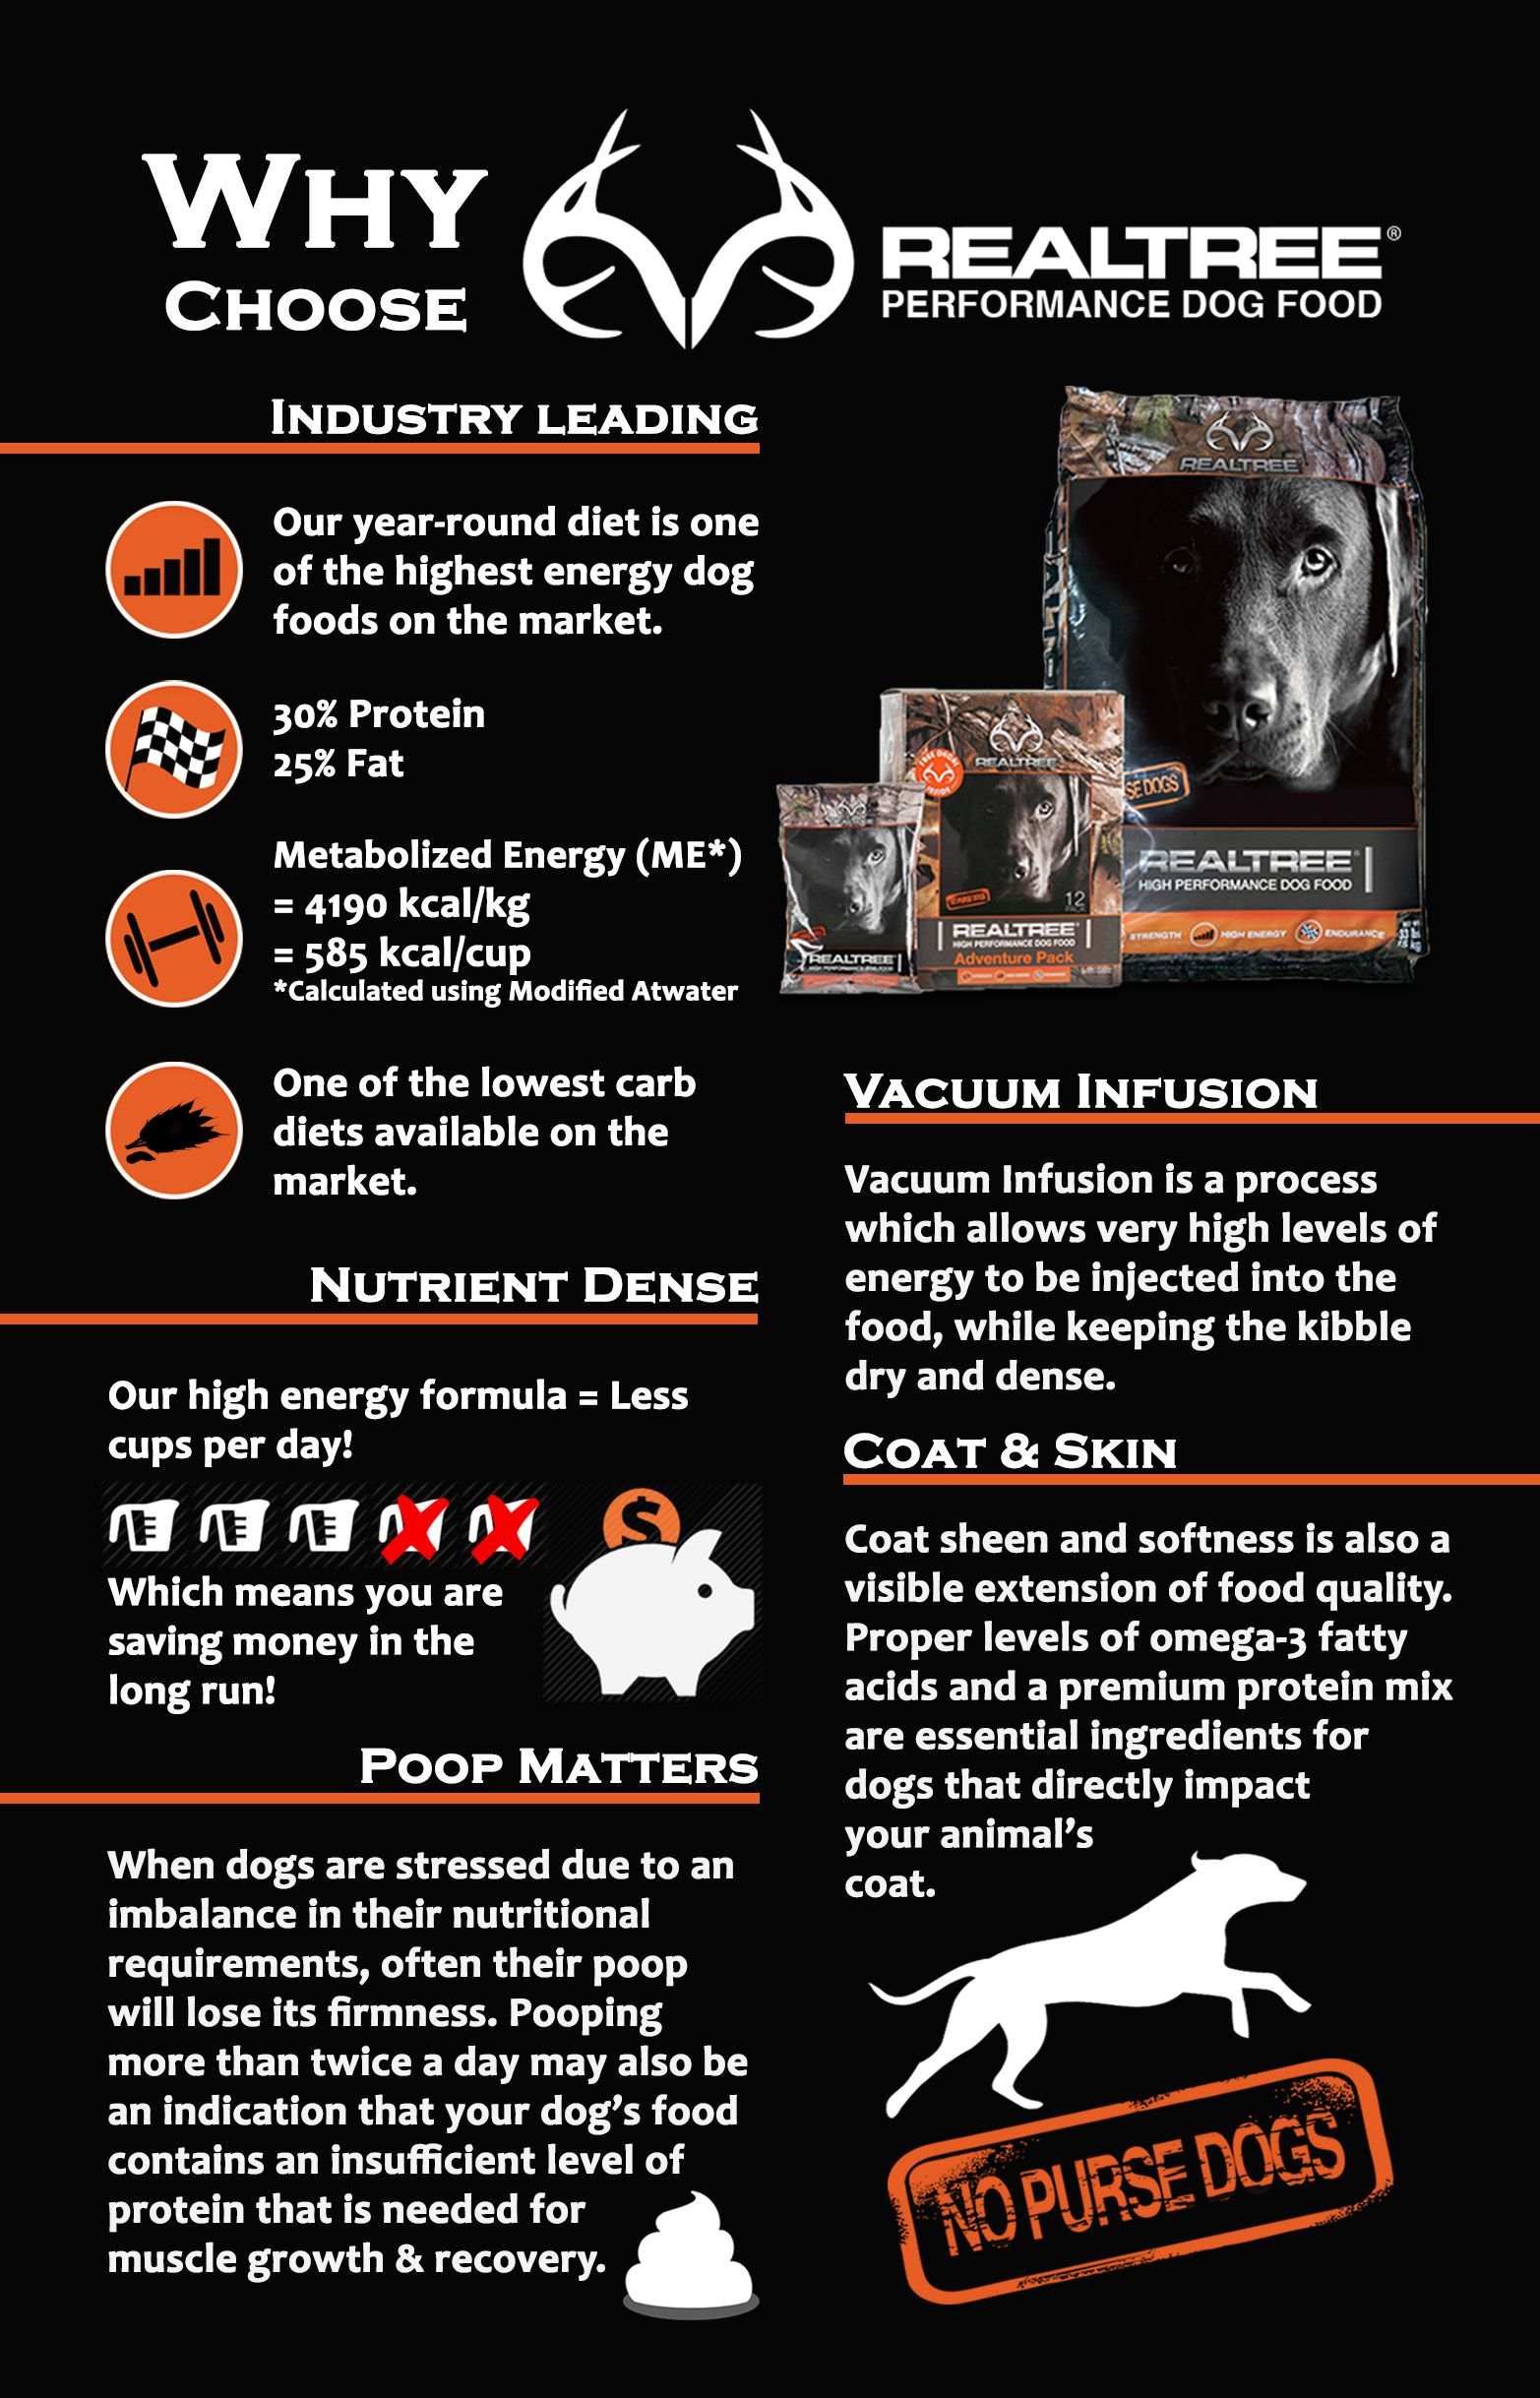 Just A Few Reasons To Choose Realtree Performance Dog Food